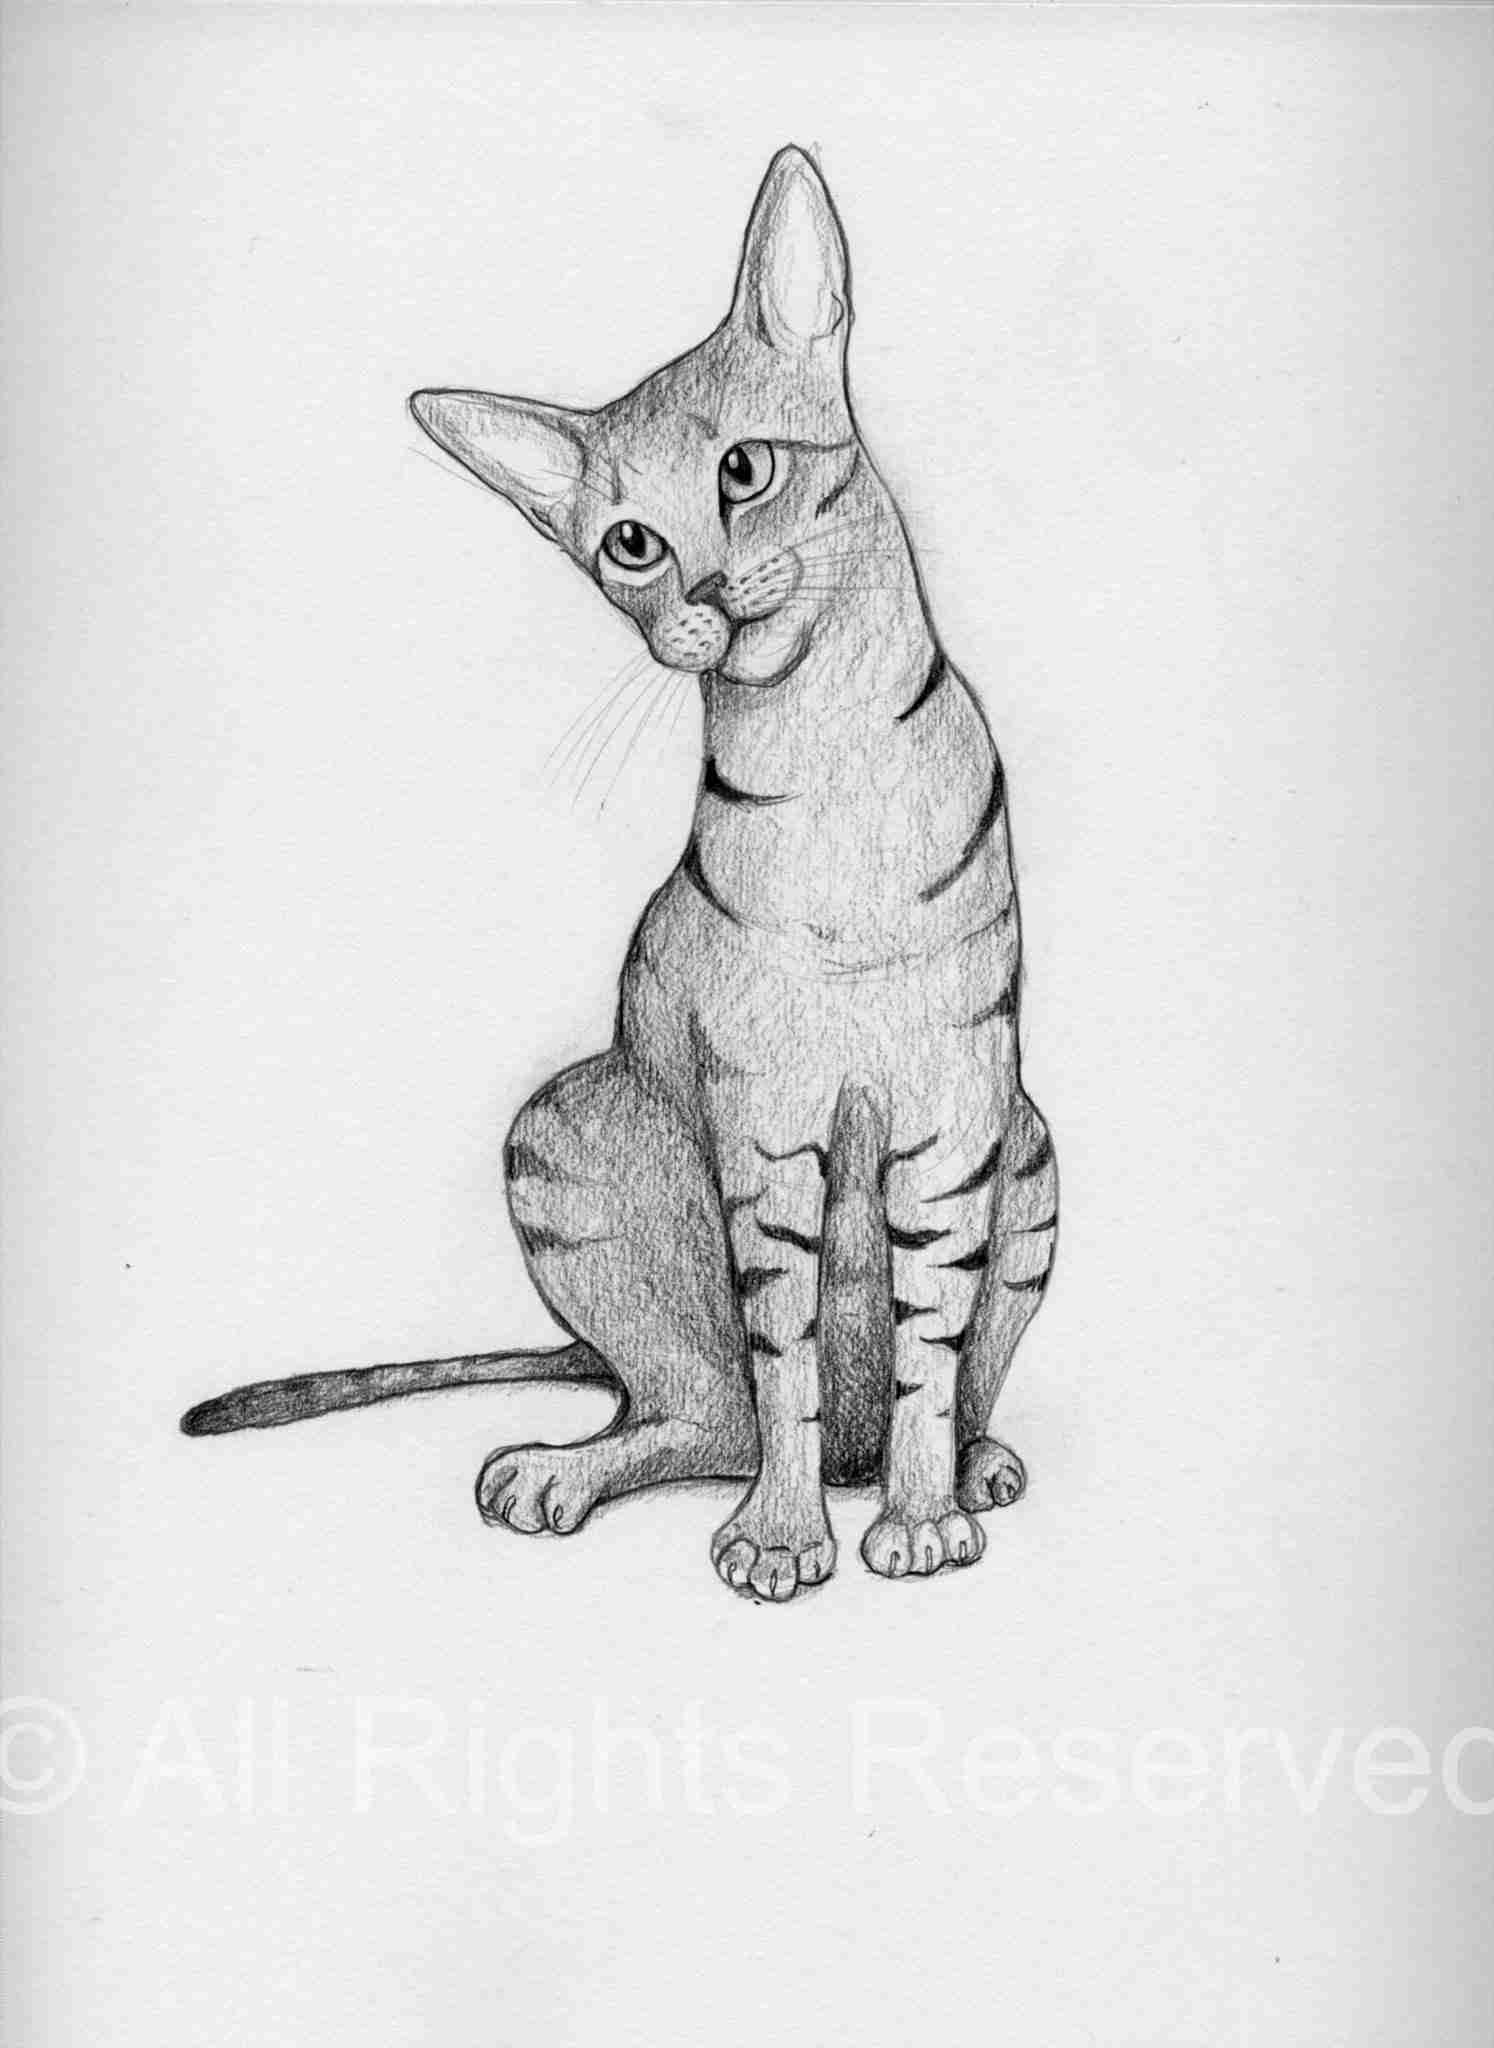 drawing of a tabby/abyssinian cat